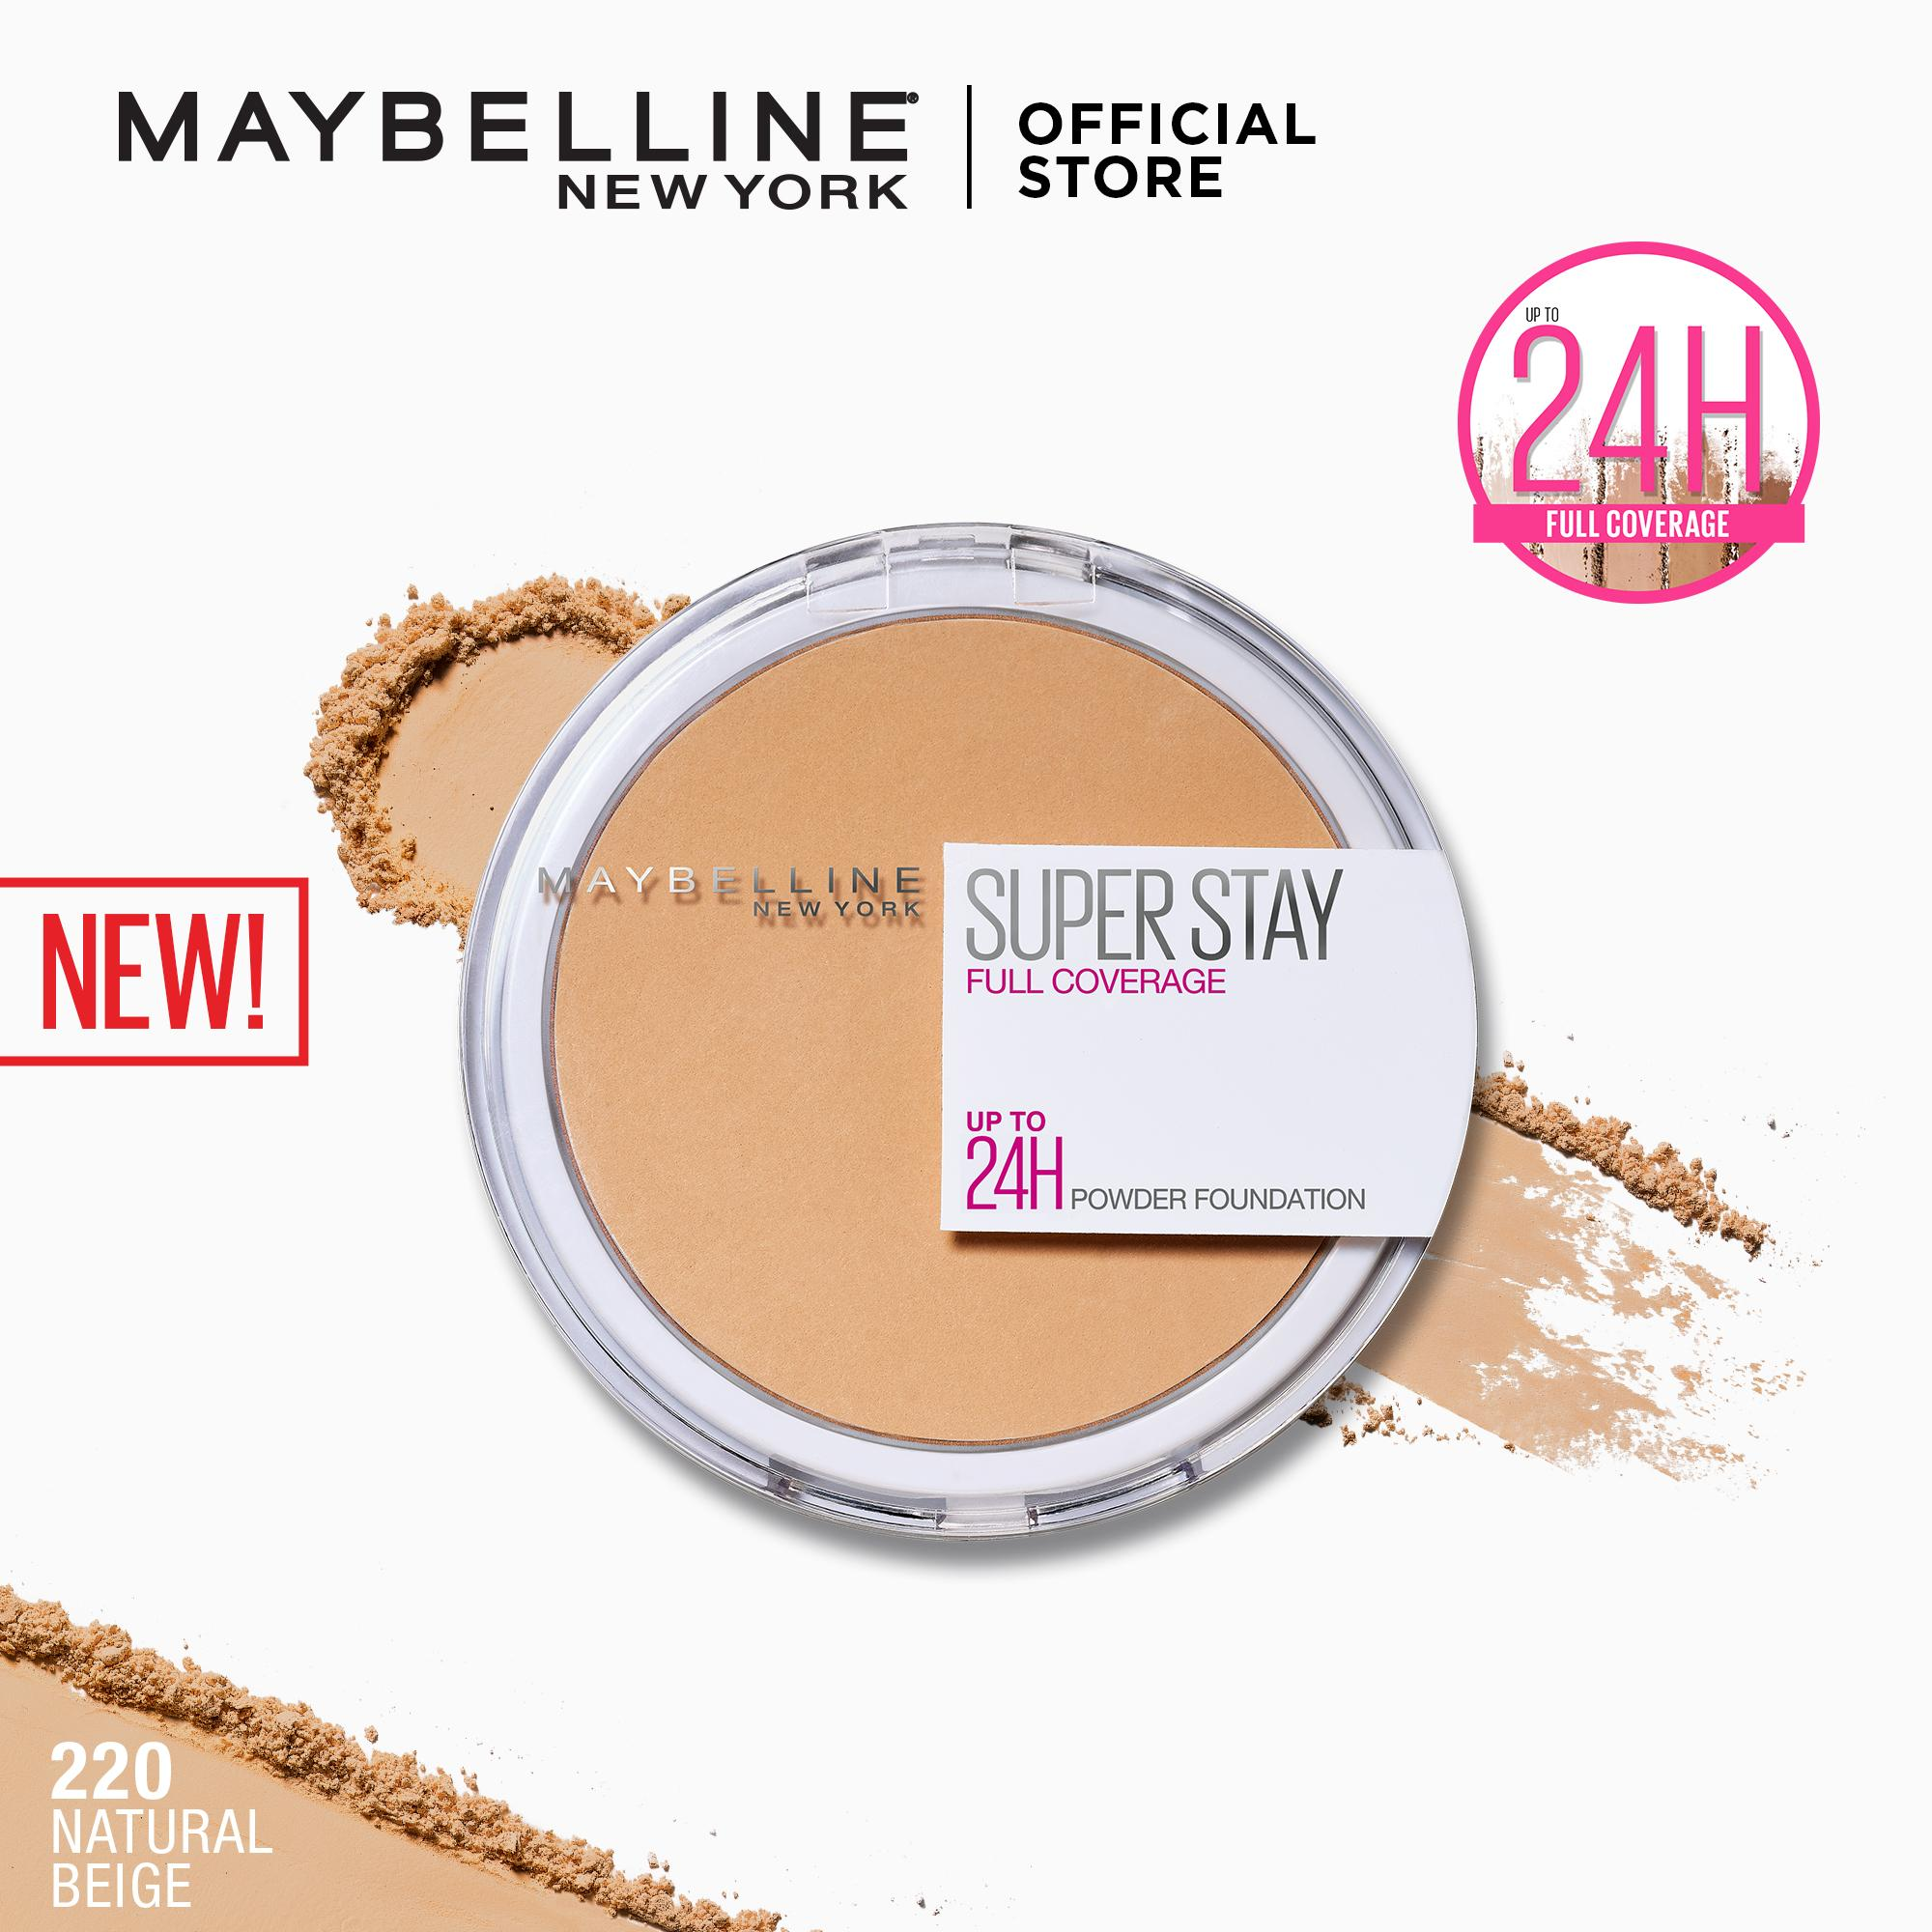 a1d456a0366 Maybelline Philippines -Maybelline Makeup for sale - prices ...